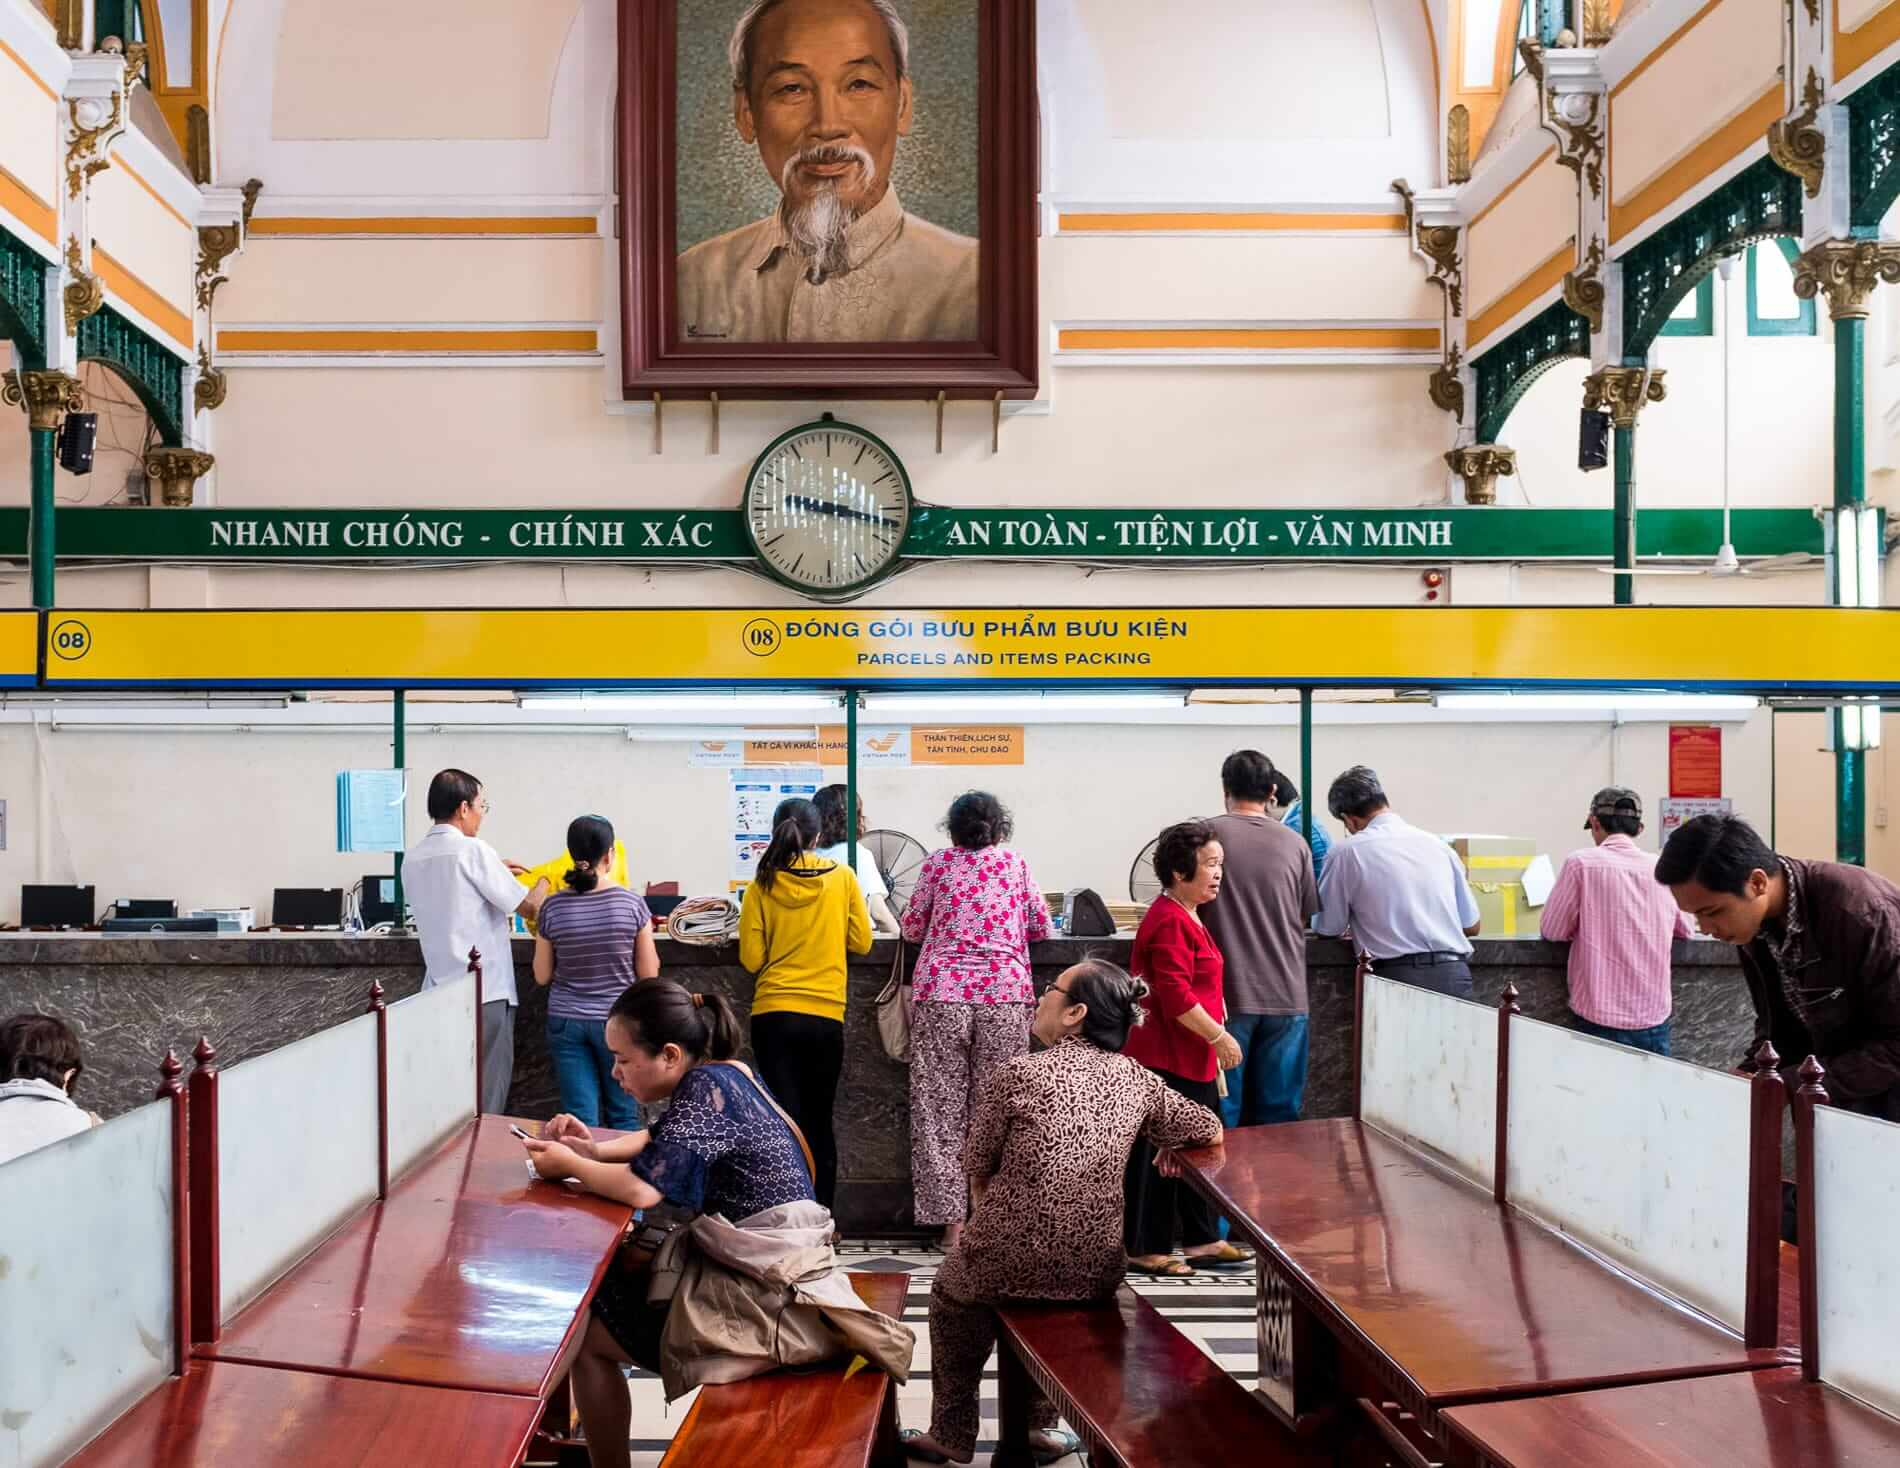 Uncle Ho's portrait at the post office in Hanoi city